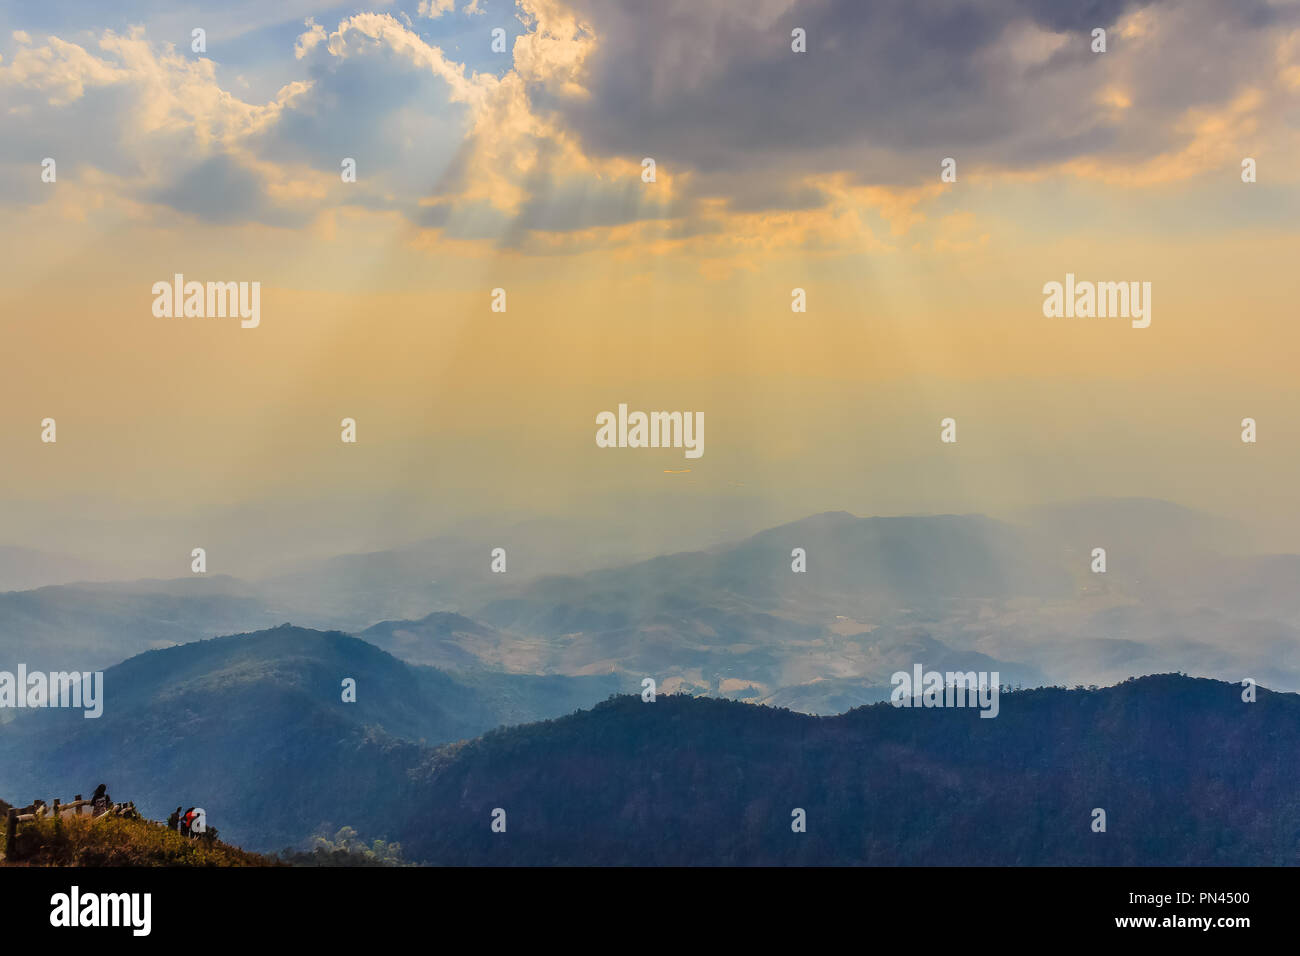 Fantastic sunbeams shining through the clouds cover the mountain and tourists at Kiew Mae Pan trekking route in Doi Intanon national park, Chiang Mai, - Stock Image